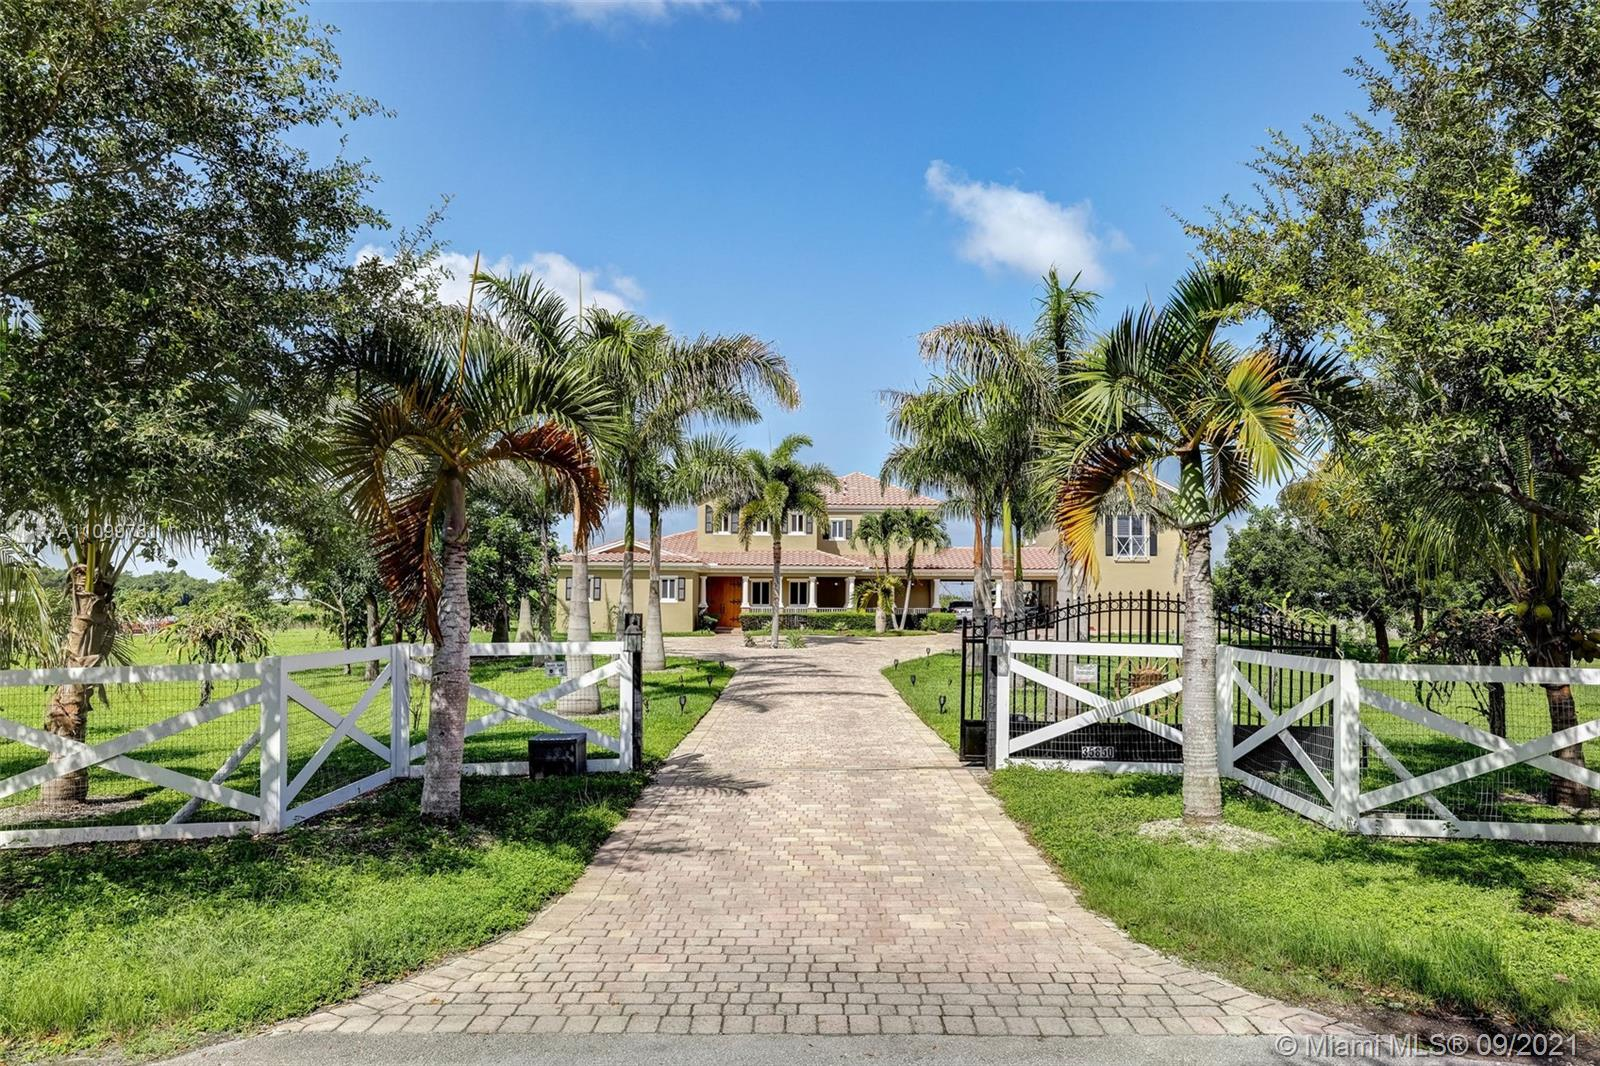 Love horses, endless space & skies? Boating & fishing? Chilling & relaxing? This home fulfills many dreams. On 5 acres in a gated community with 250 income producing fruit trees (approx. $ 30K), it is located just 30 minutes to Key Largo & 45 minutes to downtown Miami, MIA & many dining- shopping districts. Everything is centered on Florida outdoor living – huge, covered patio to enjoy tropical vistas & a large pool with a swim up Tiki bar! Invisible dog fence, mosquito repellant system, vegetable garden ready to be planted. High ceilings & flowing living spaces all opening to the patio. Master suite is located on ground floor & 4 bedrooms on the 2nd floor.  All impact windows & doors, a propane generator & a fabulous coach house above 3 car garage with a full 1bedroom apartment